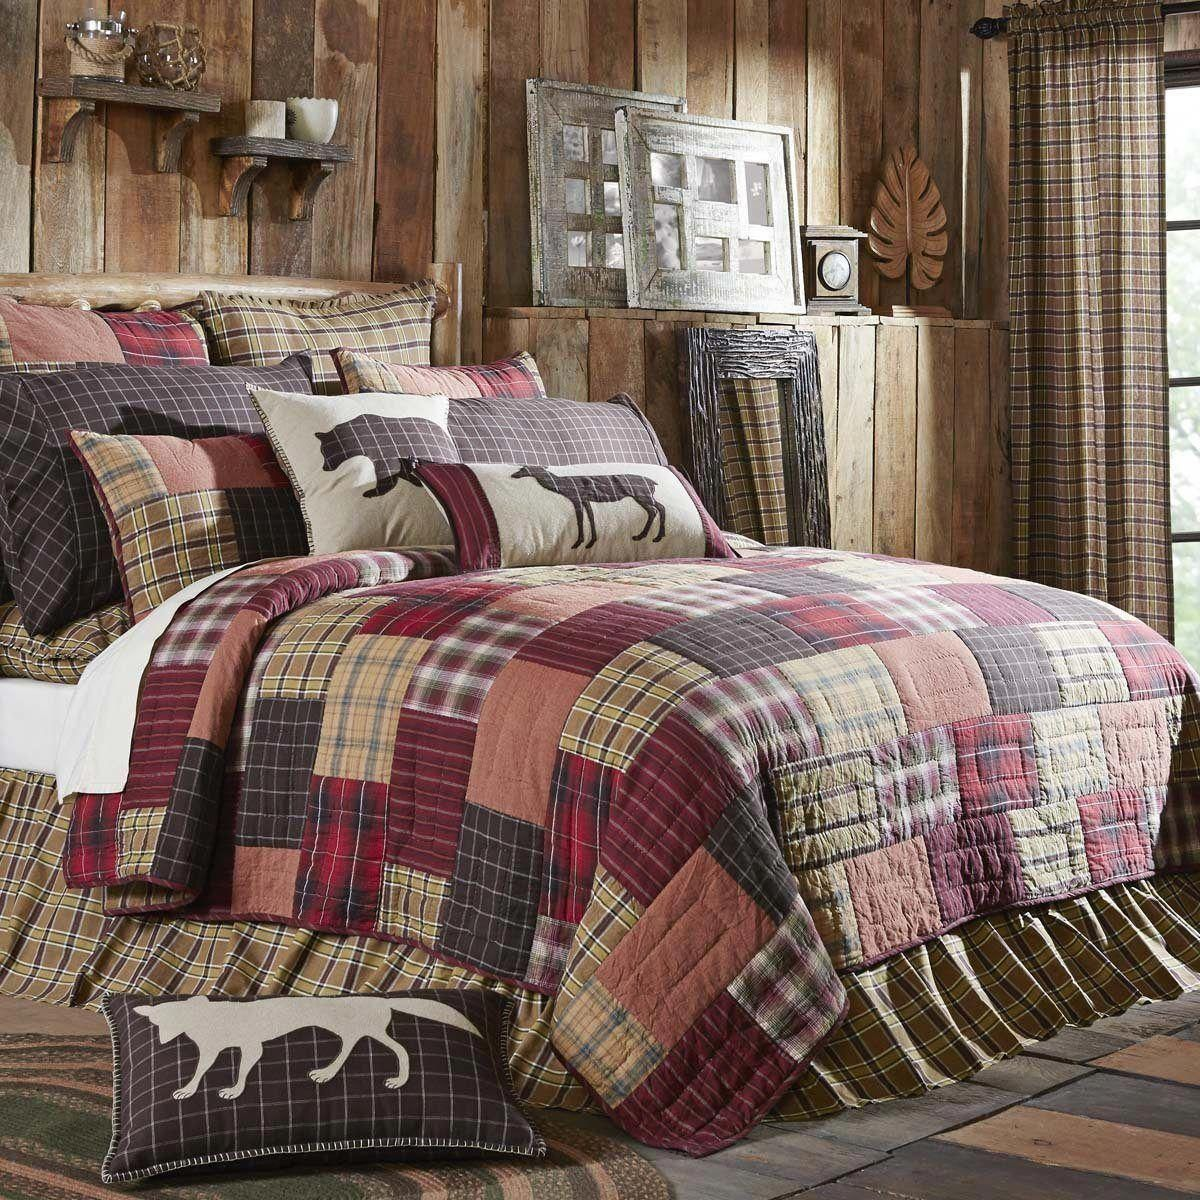 Rustic Home Decor Cozy Rusticdecortips In 2020 Rustic Bedding Rustic Bedroom California King Quilts